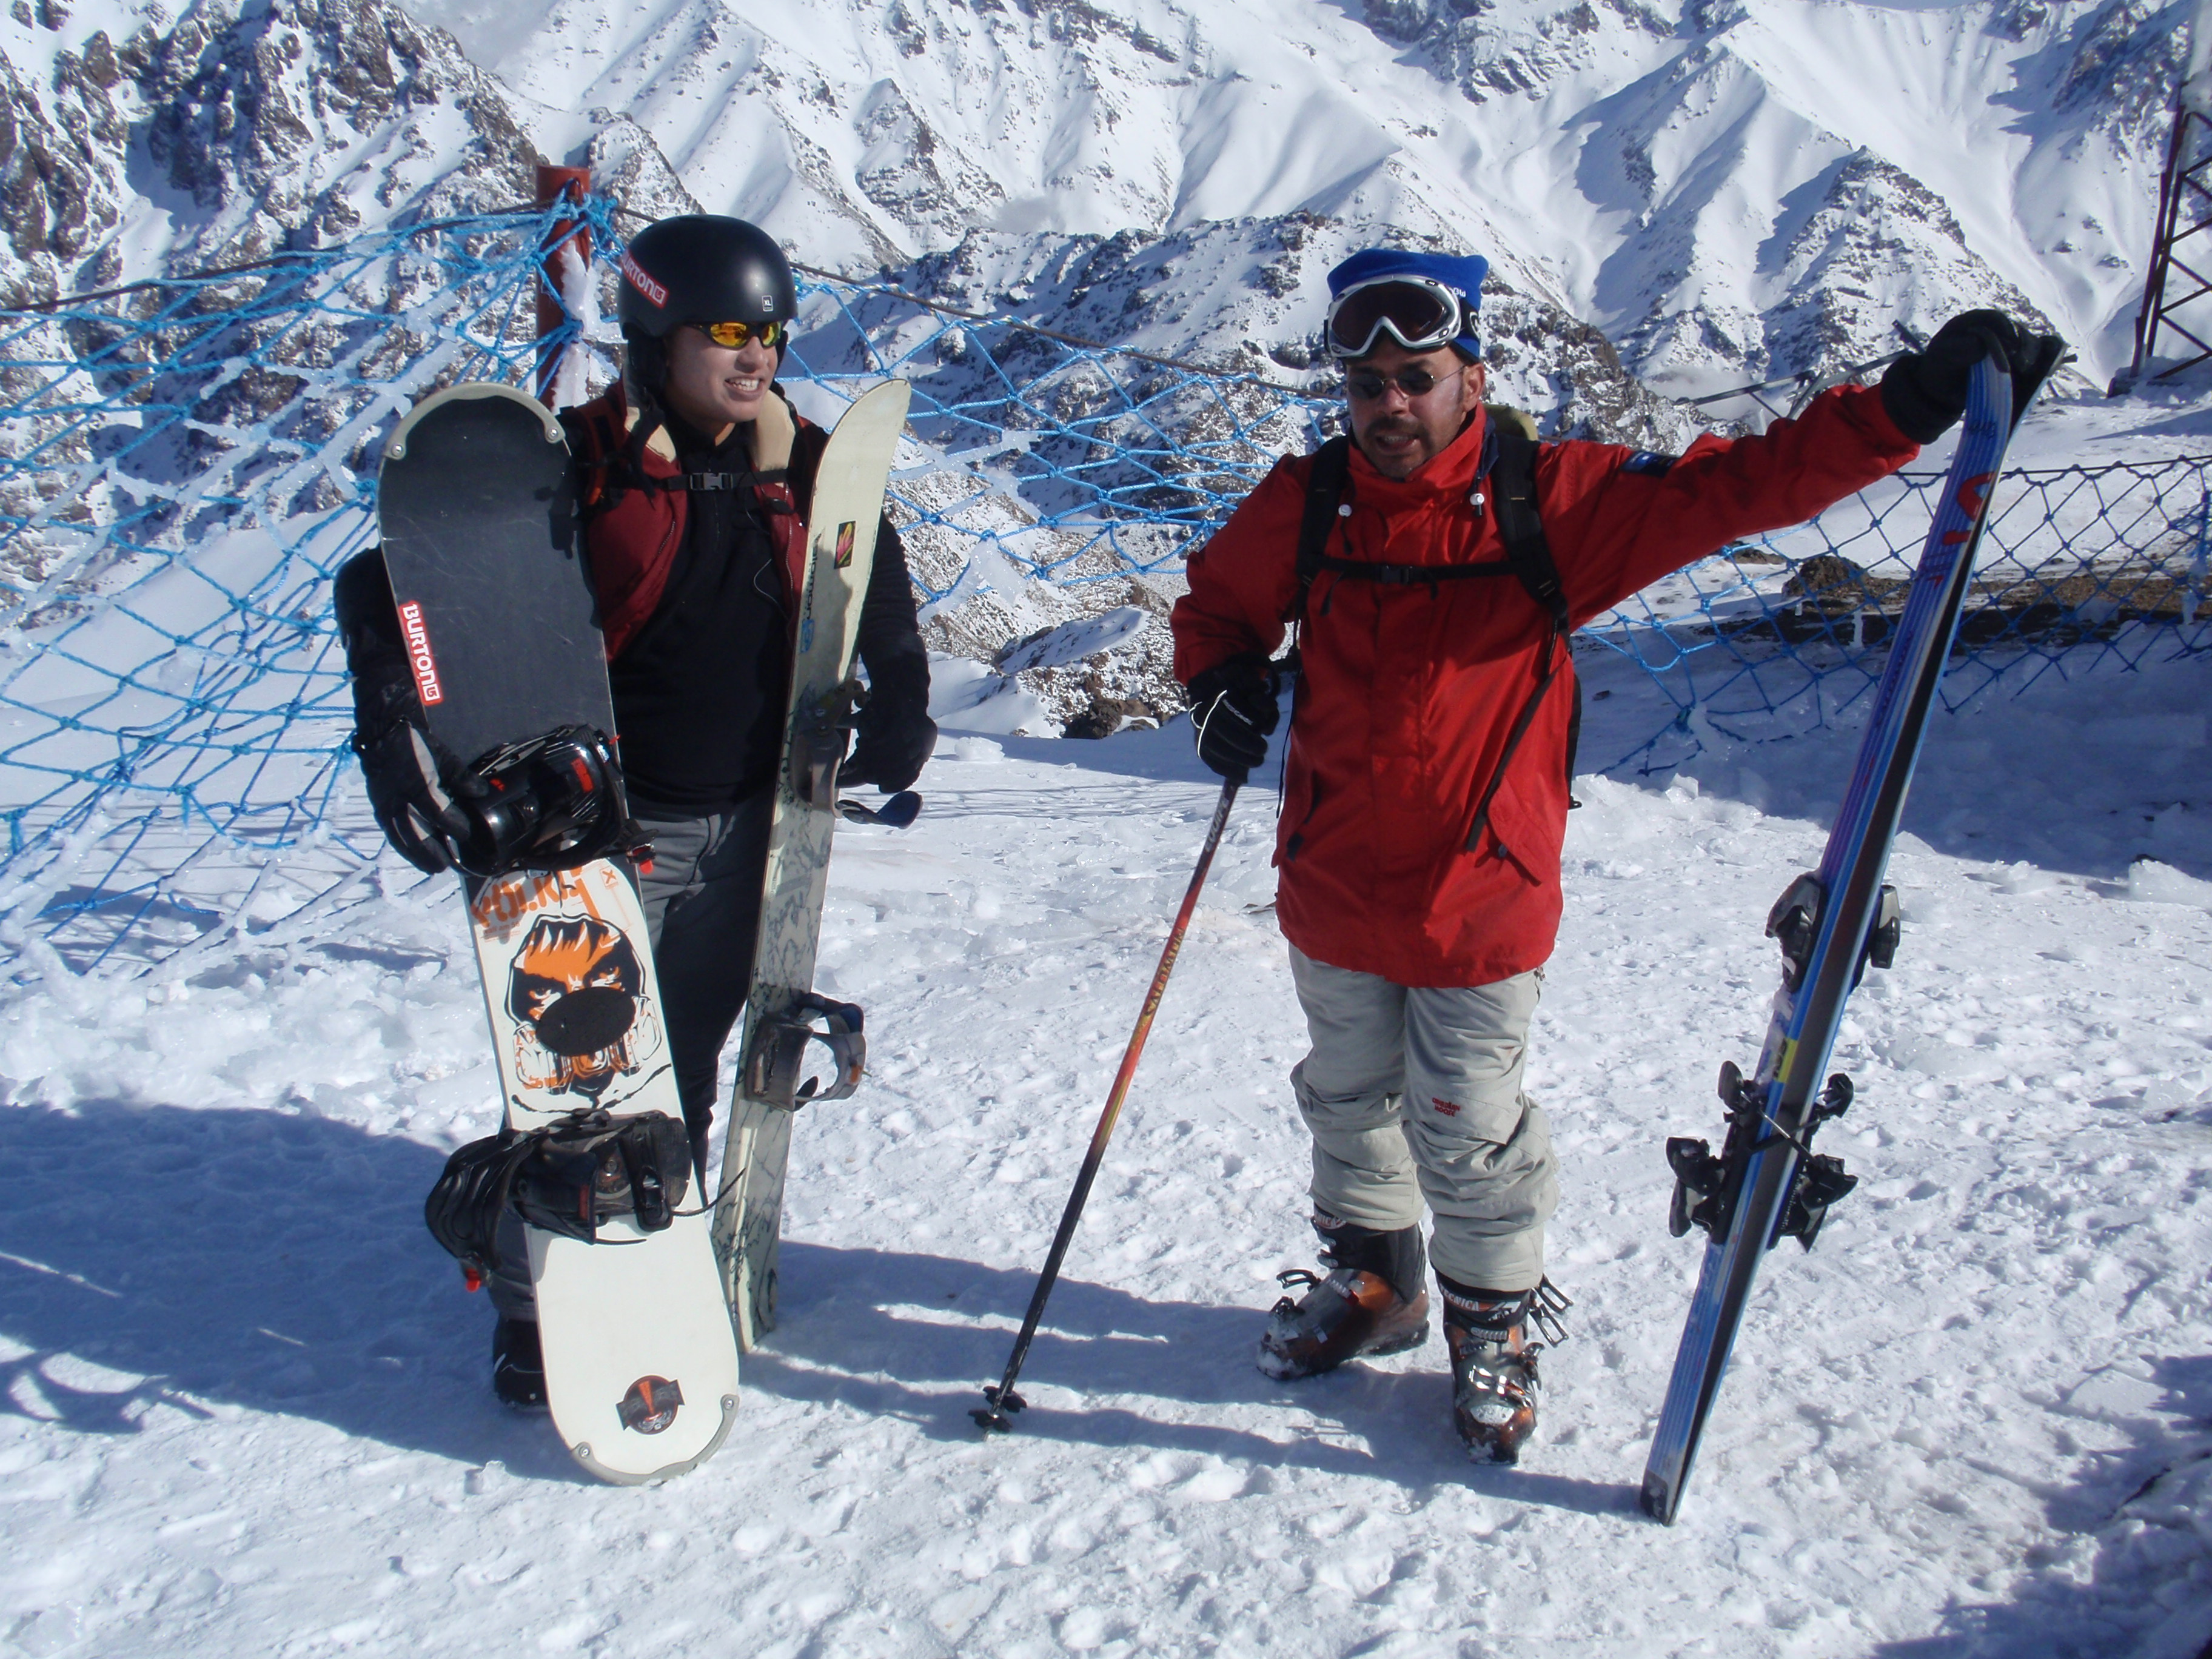 Skiing at the summit of Oukaymeden, Oukaïmeden